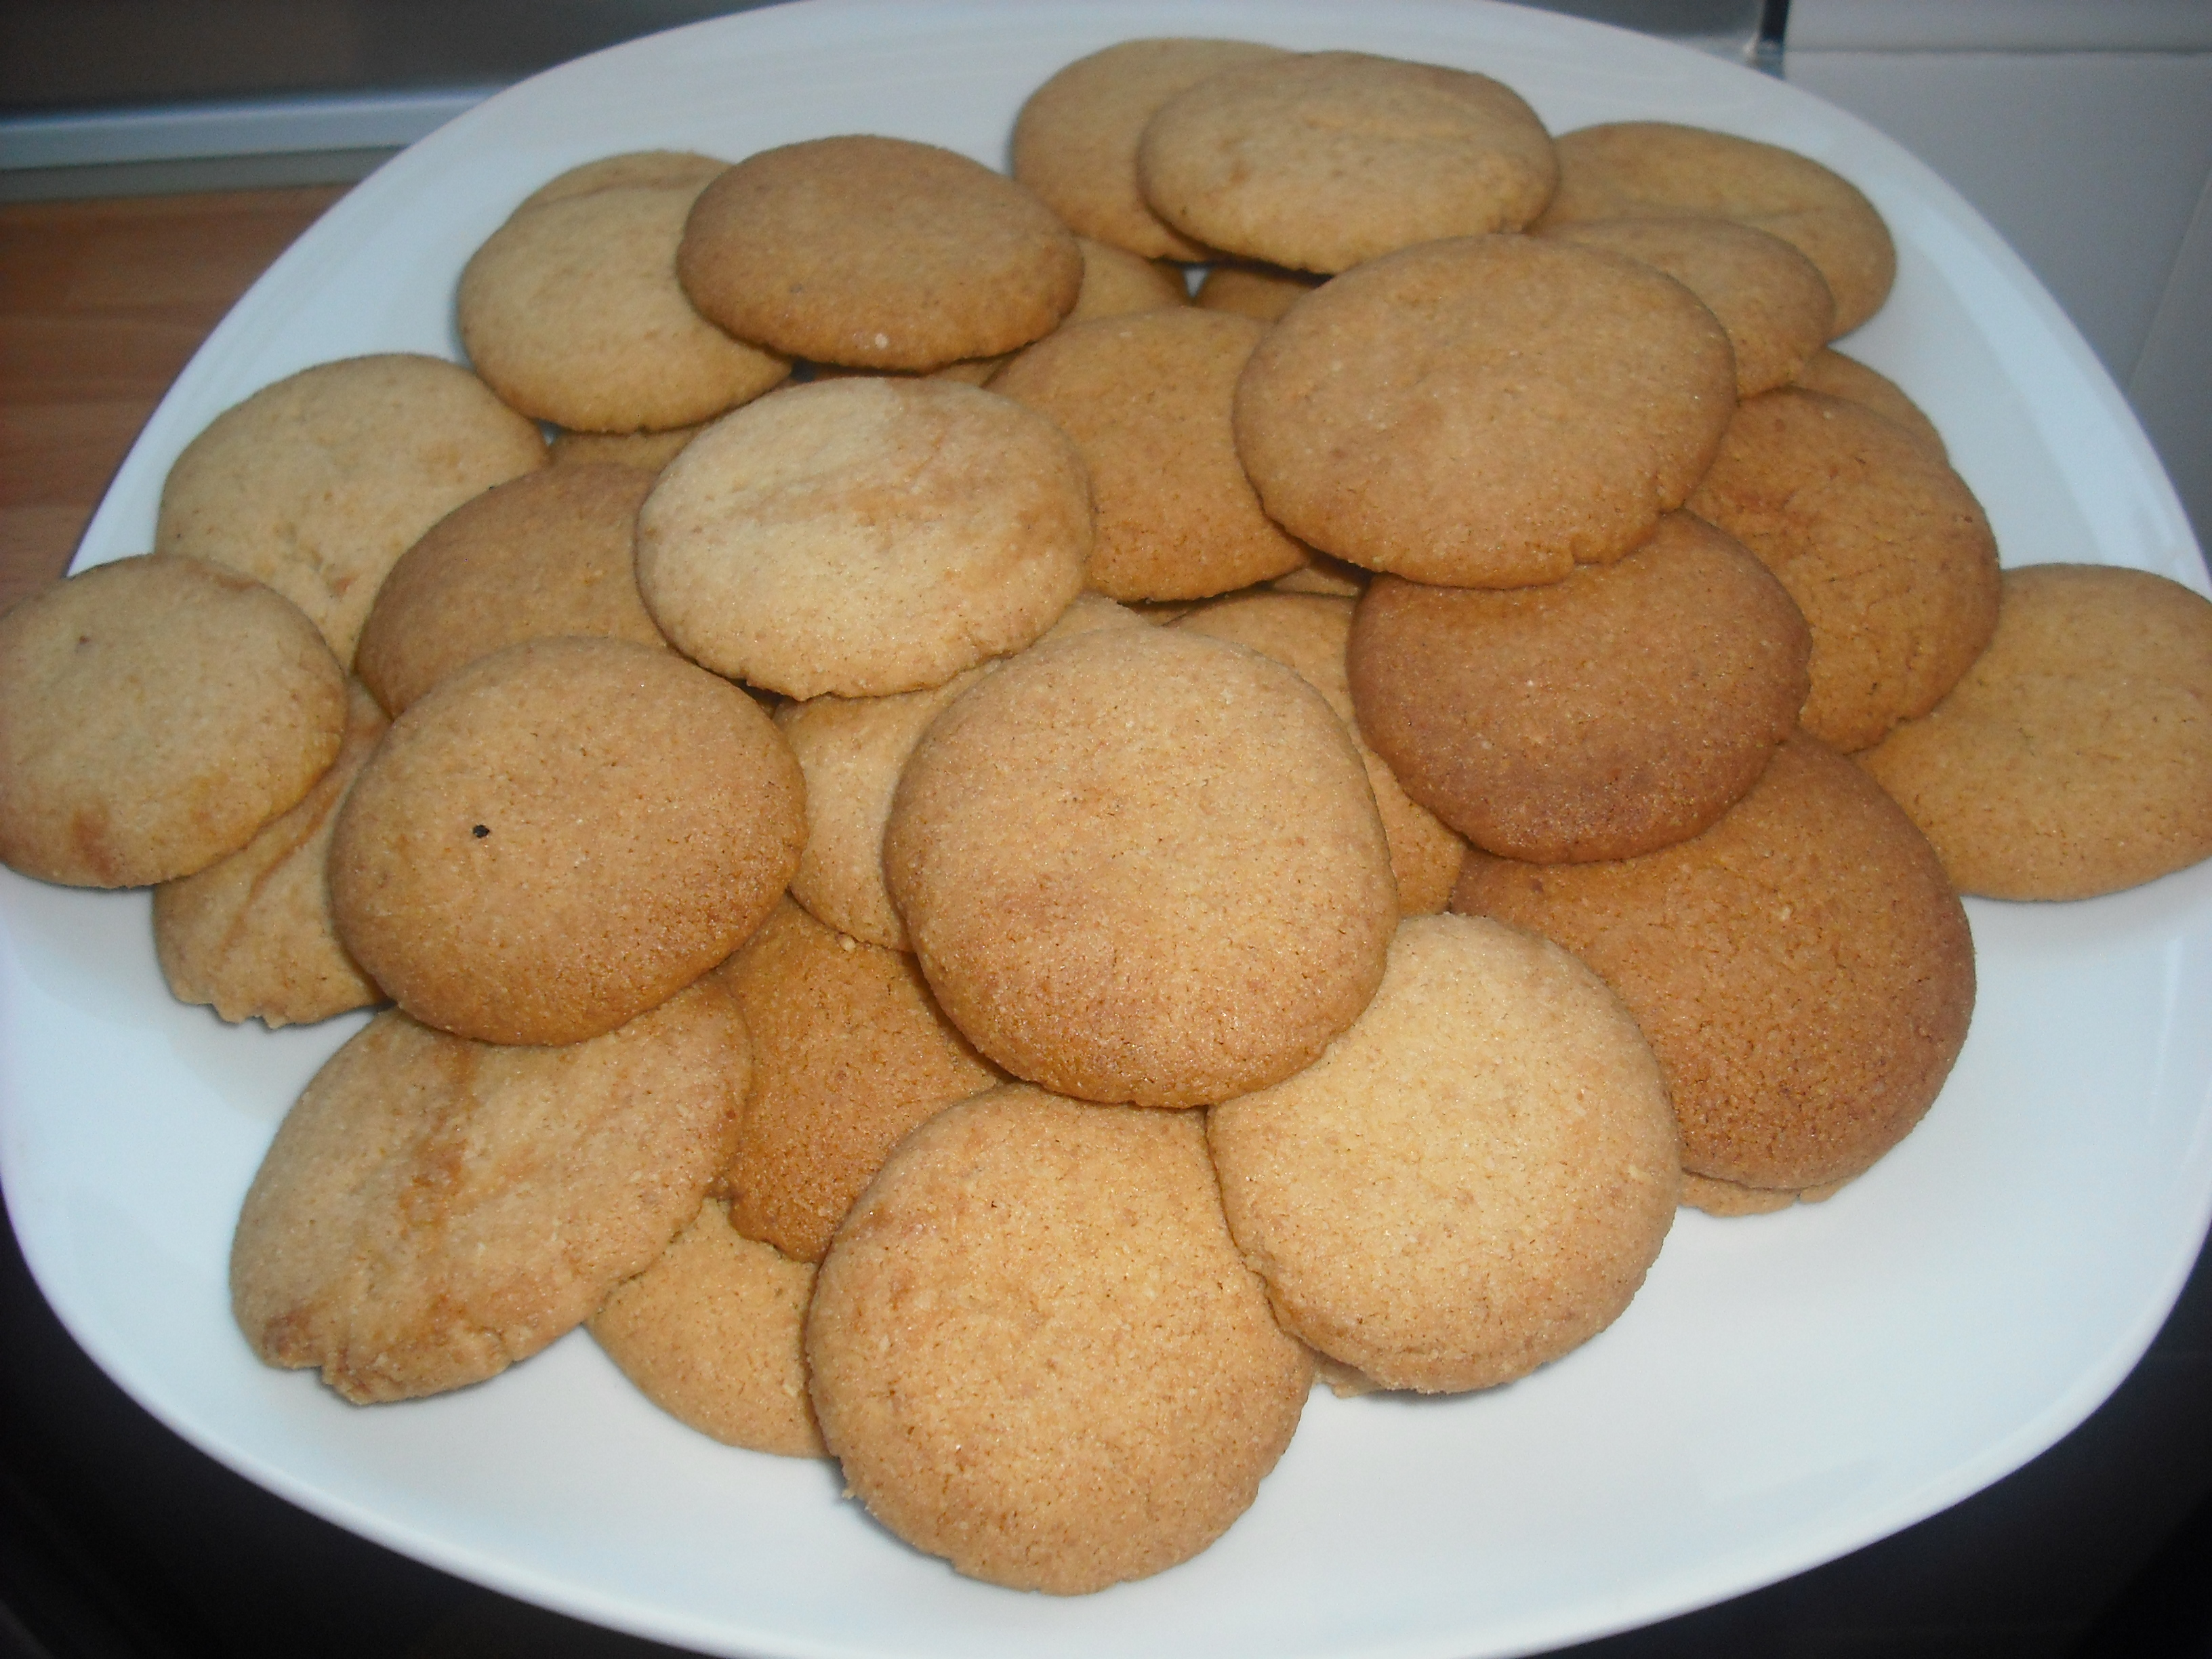 Galletas de almendra con y sin chocolate